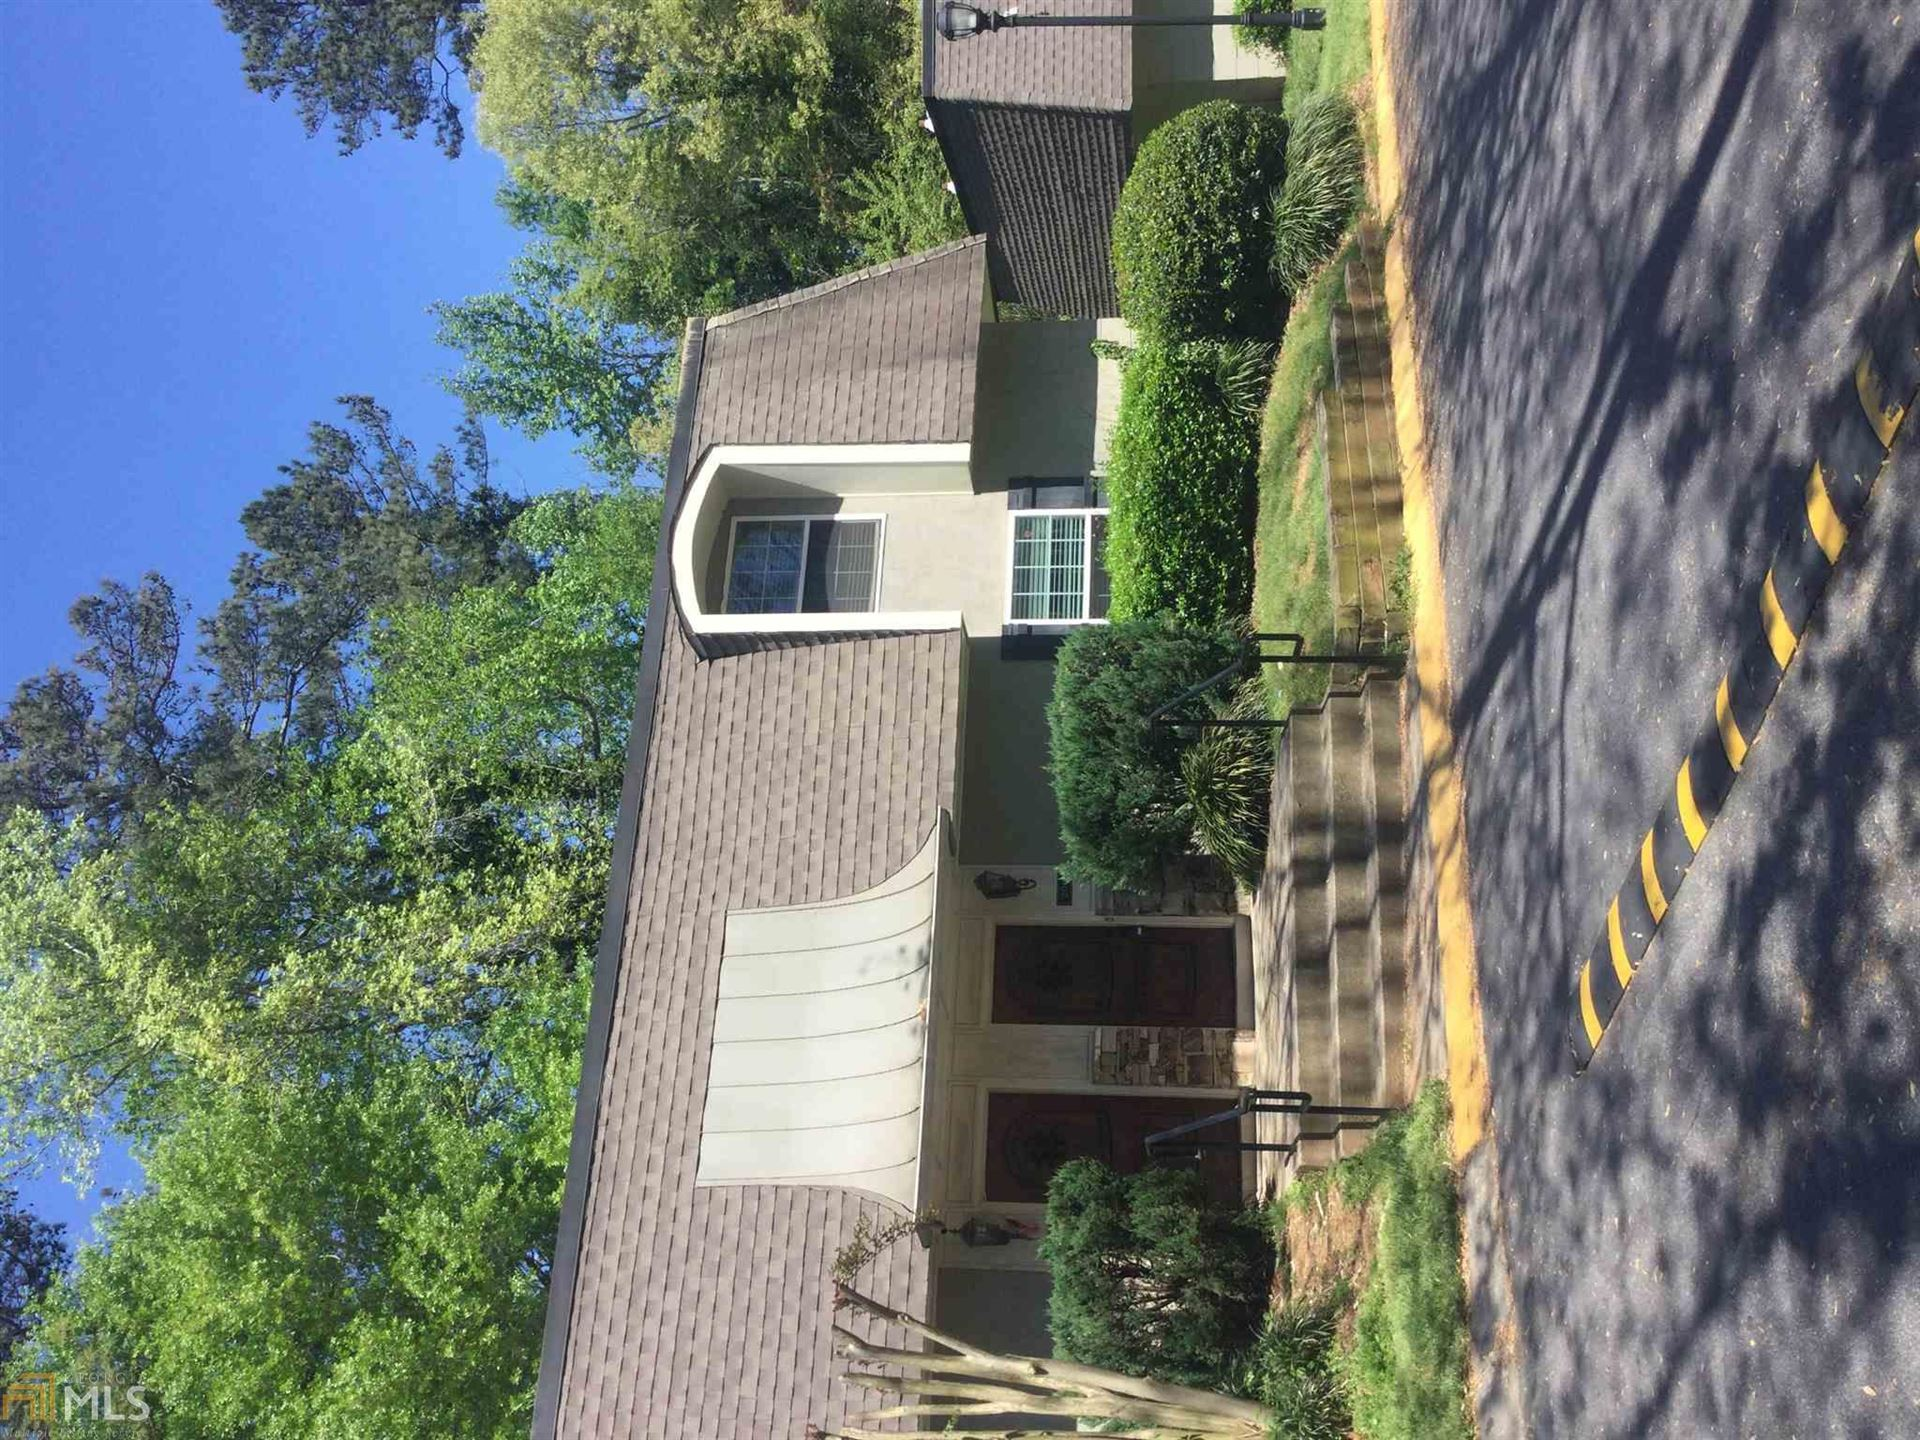 4430 Tilly Mill Rd, Atlanta, GA 30360 - MLS#: 8908827